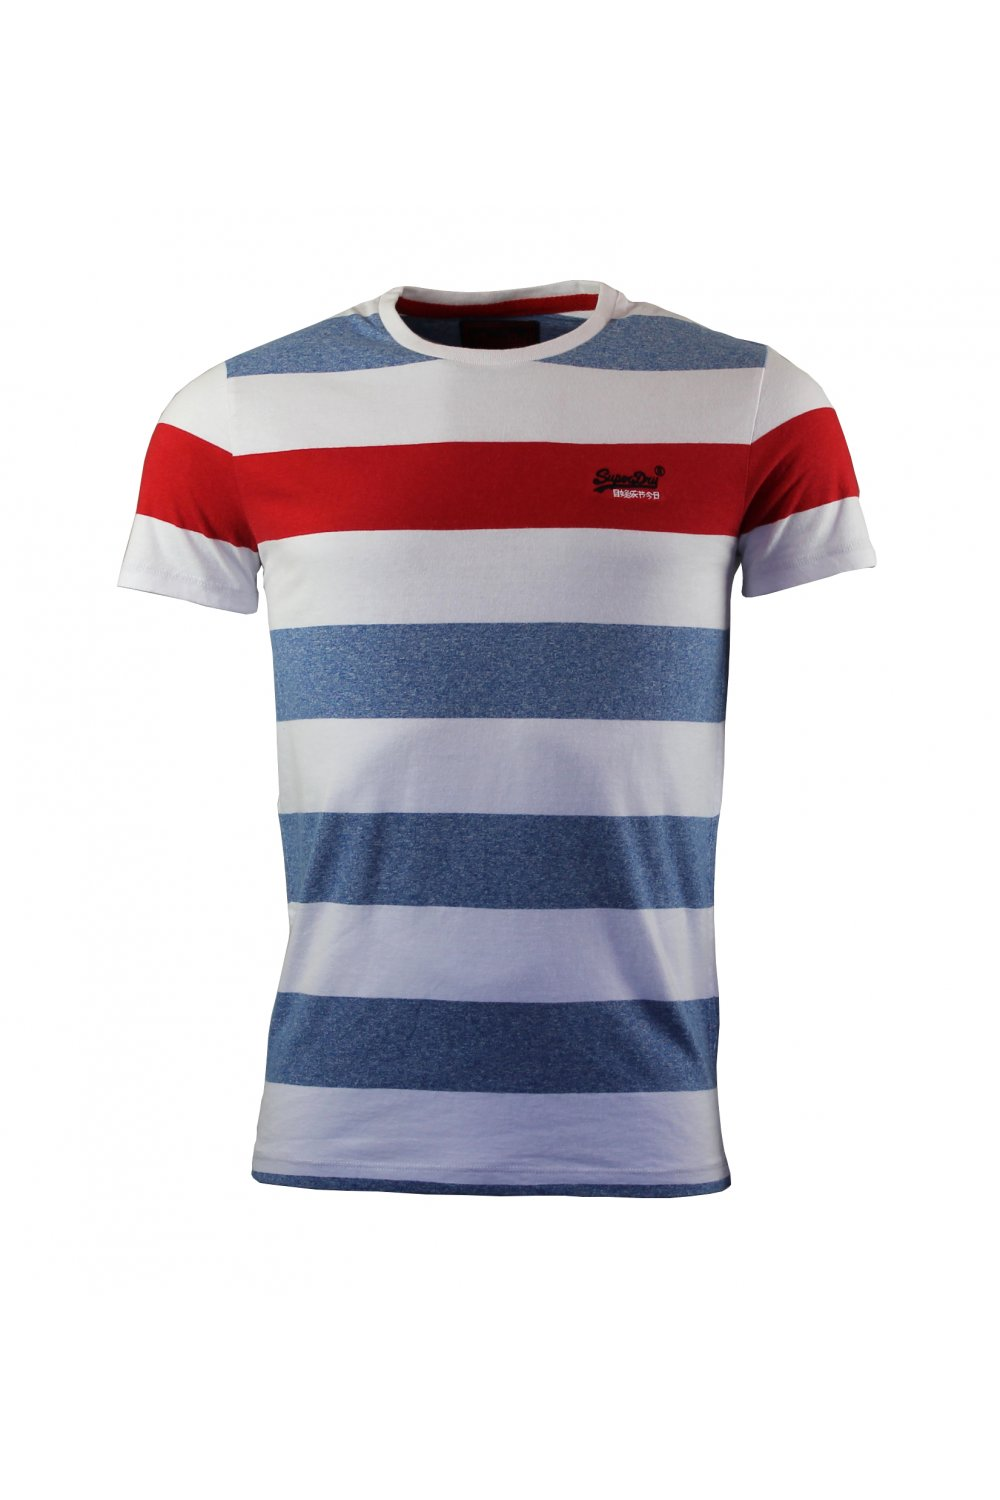 superdry orange label hoop stripe t shirt royal grit superdry from thirtysix uk. Black Bedroom Furniture Sets. Home Design Ideas